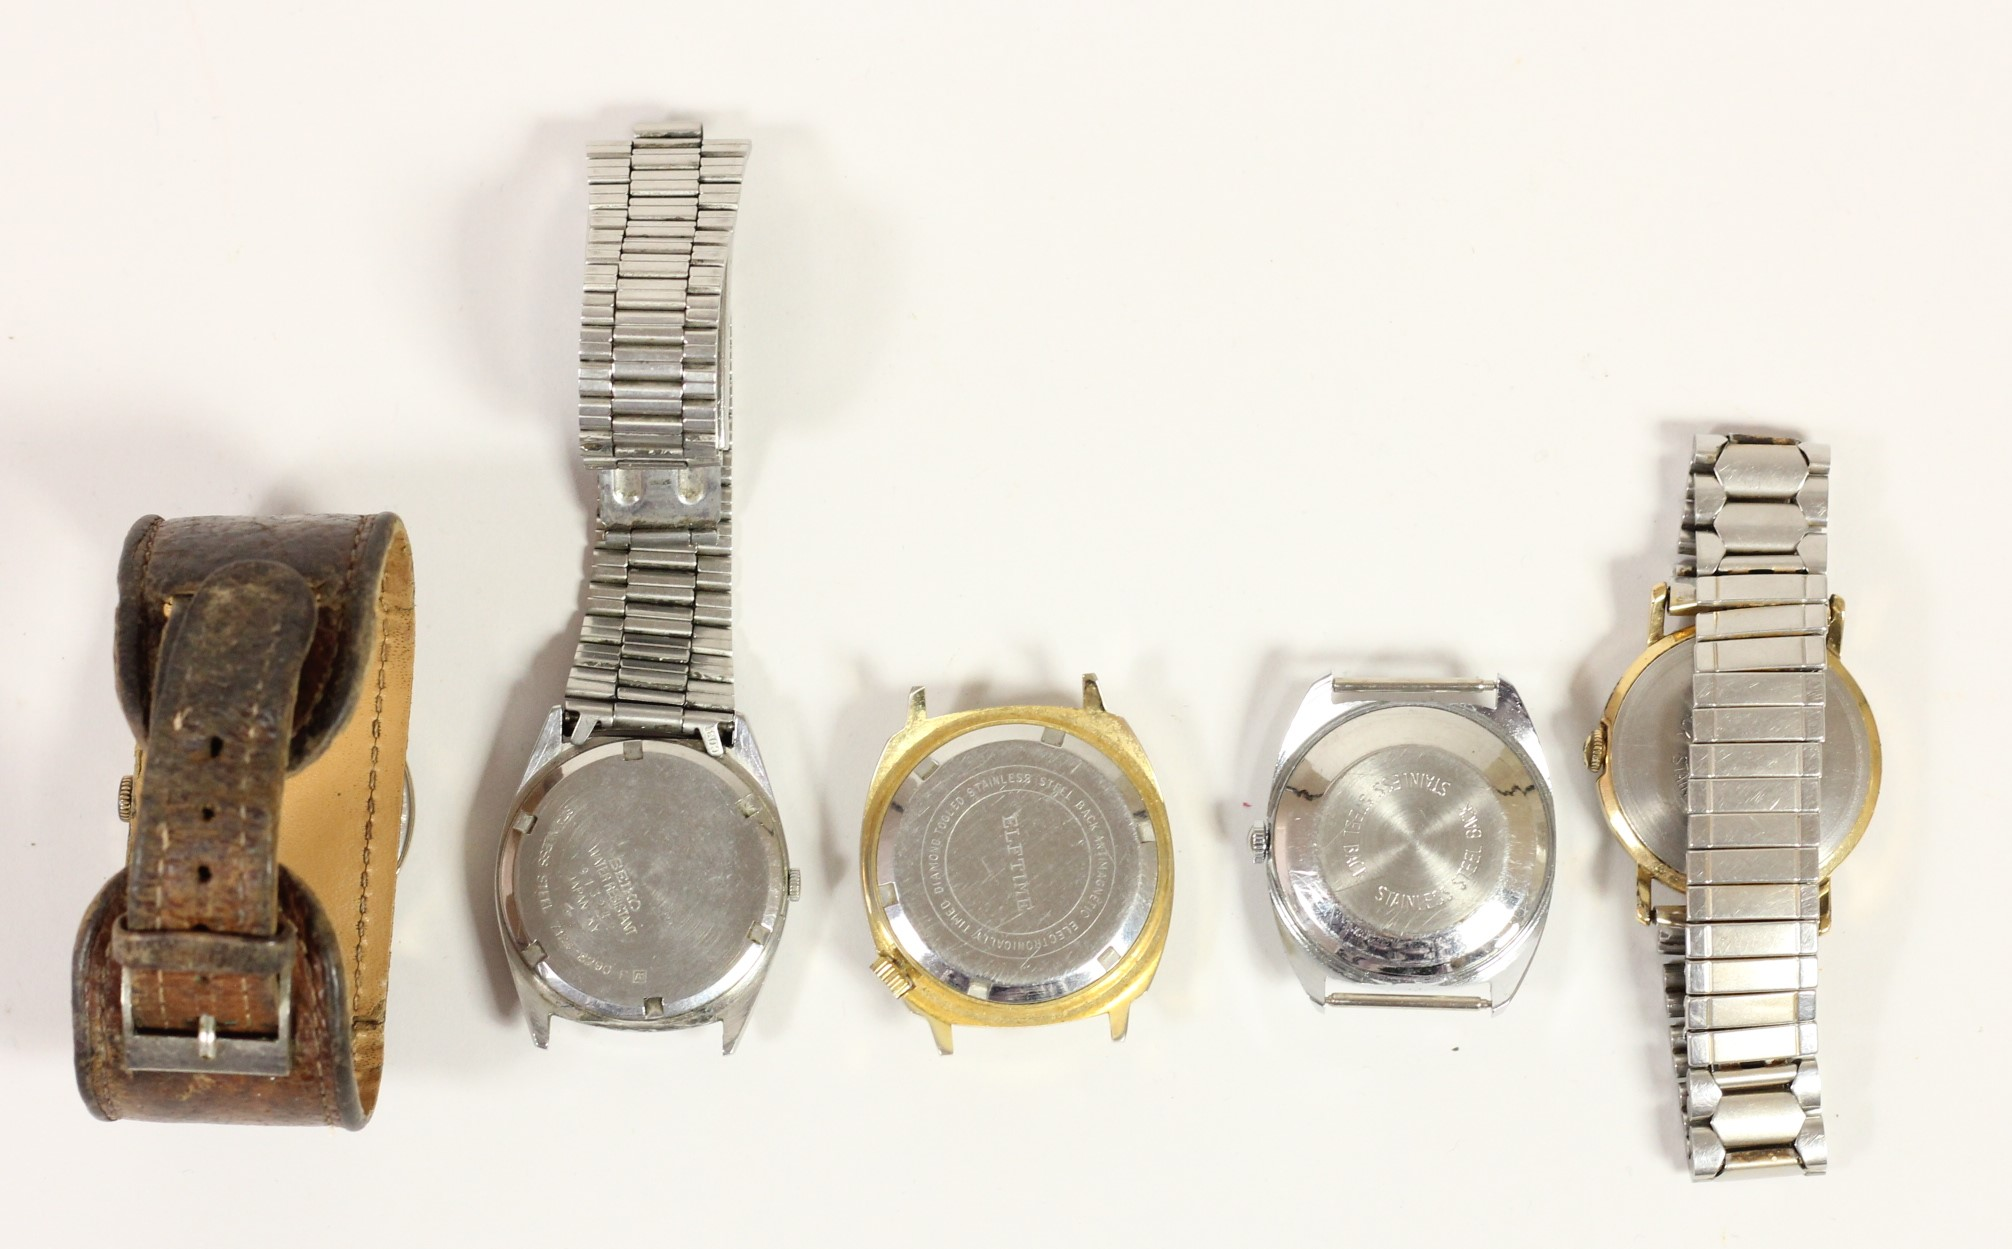 A Smiths Empire manual wind wristwatch, a Seiko quartz day/date wristwatch and three other - Image 2 of 2